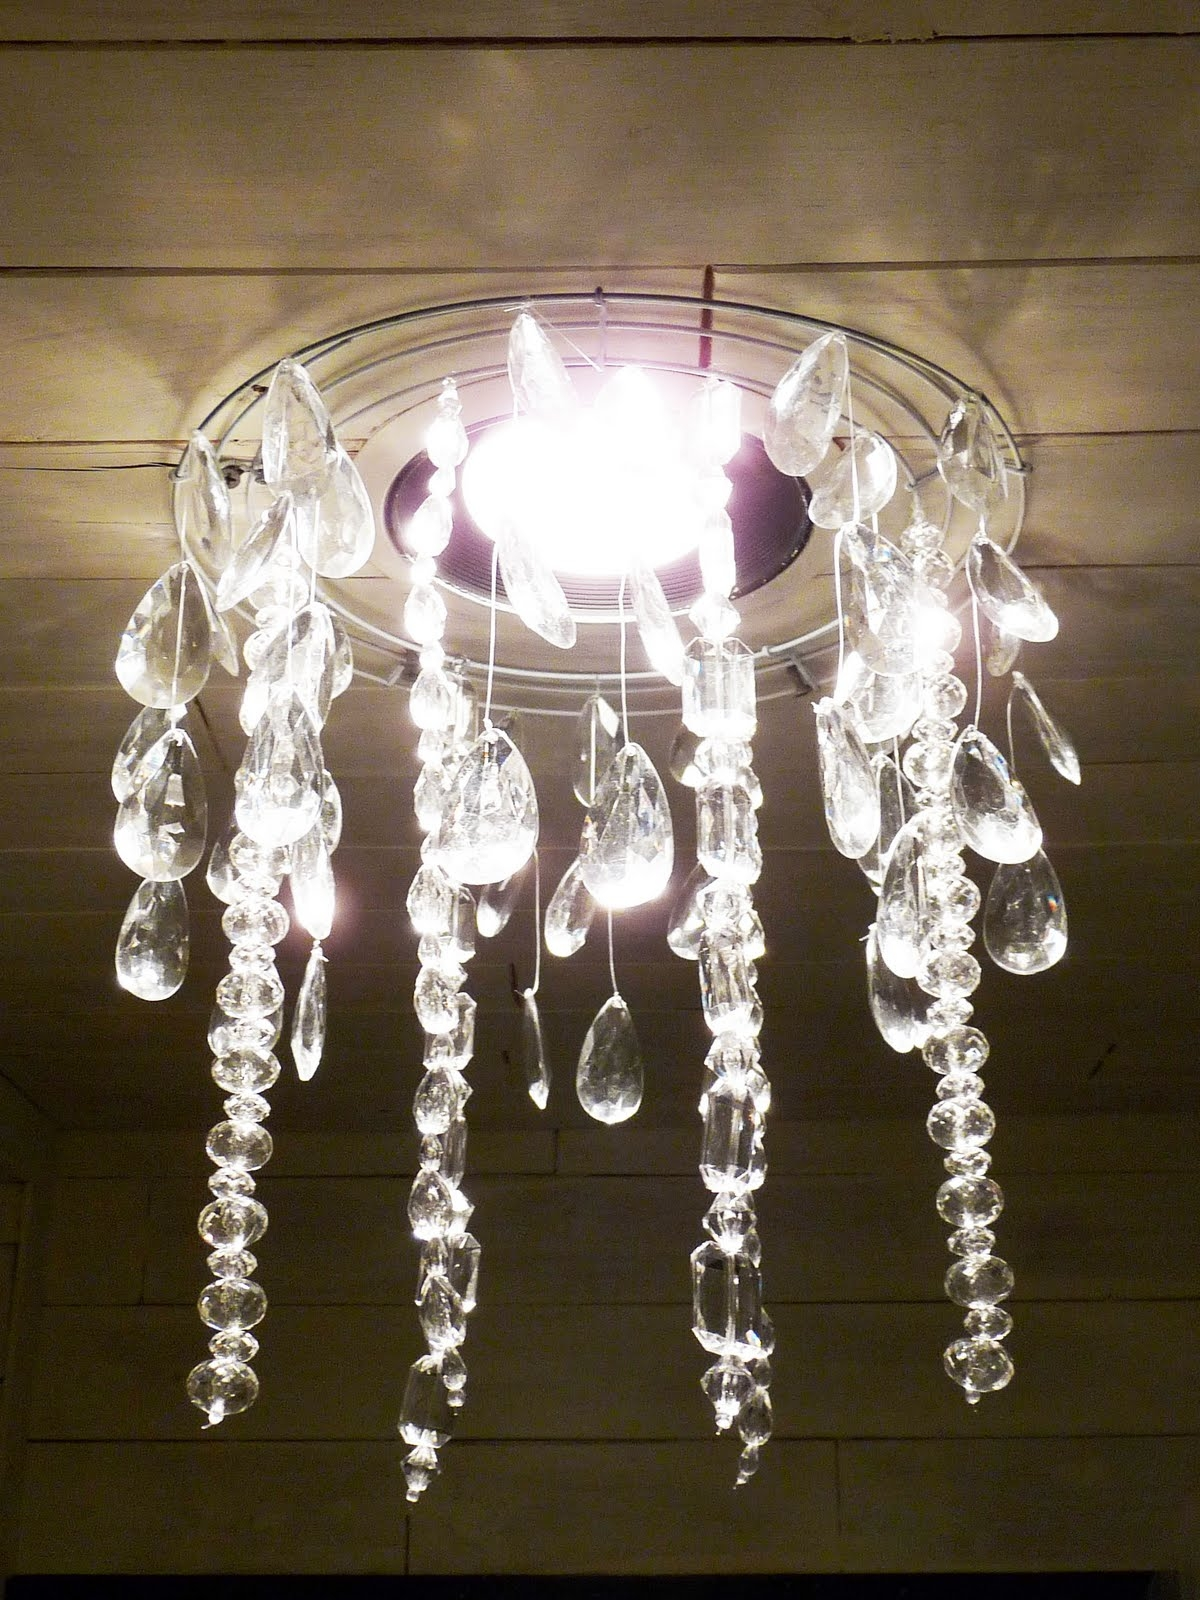 Chandelier Astonishing Faux Crystal Chandeliers Faux Chandeliers Inside Cheap Faux Crystal Chandeliers (Image 5 of 25)